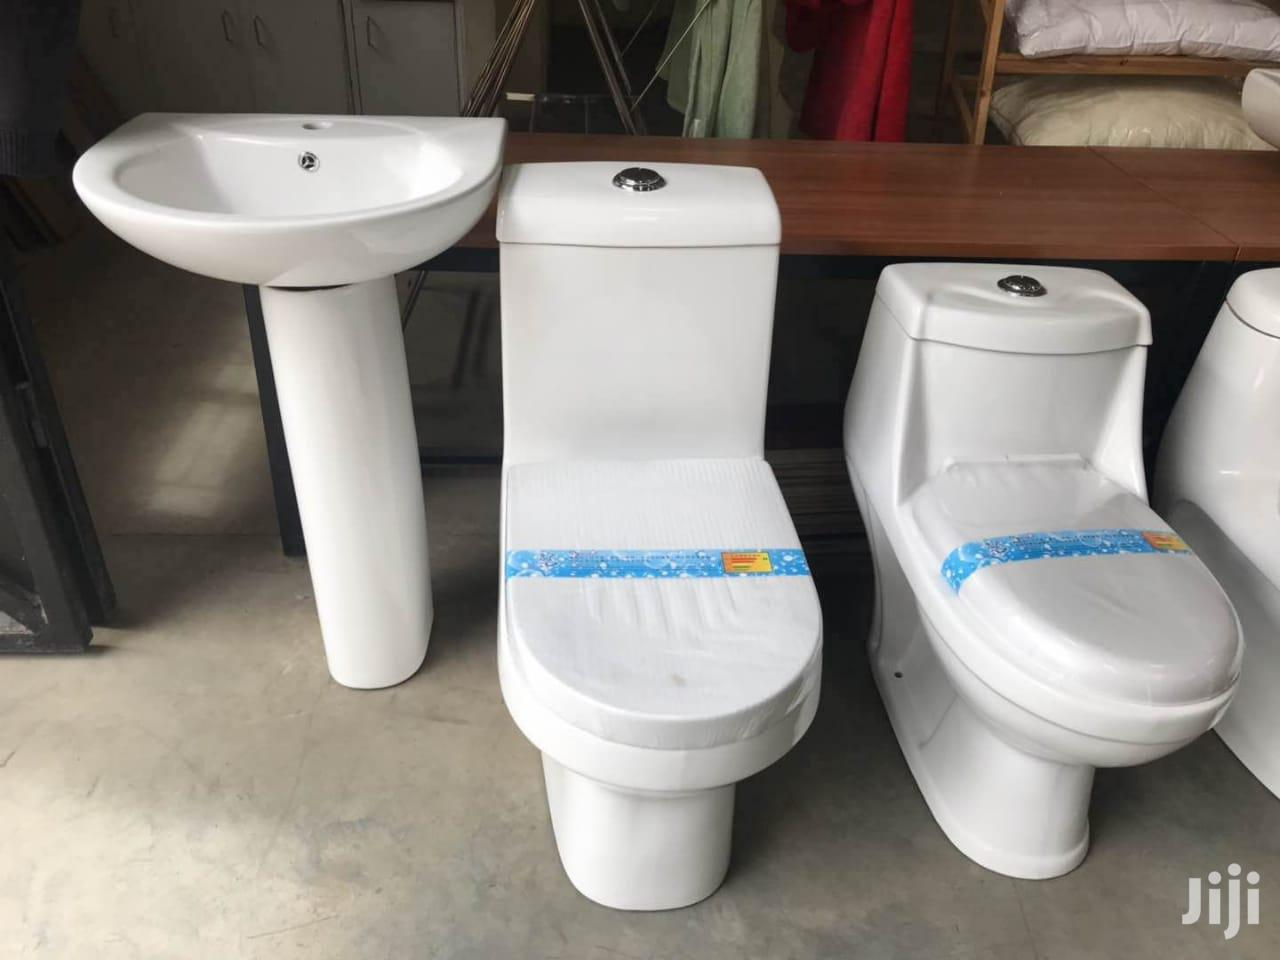 Toilets On Sale | Plumbing & Water Supply for sale in Kampala, Central Region, Uganda